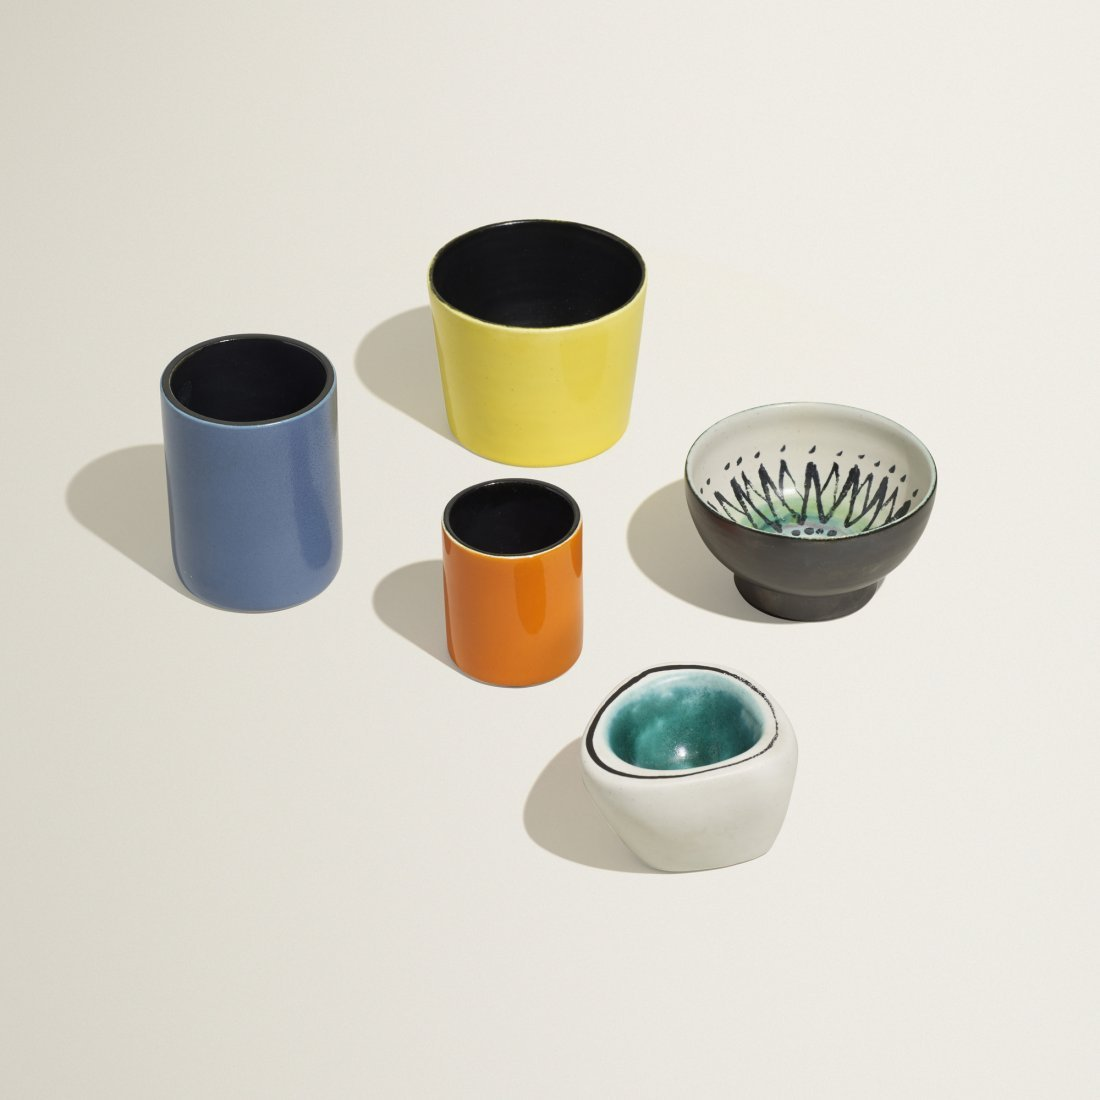 Georges Jouve collection of five vessels